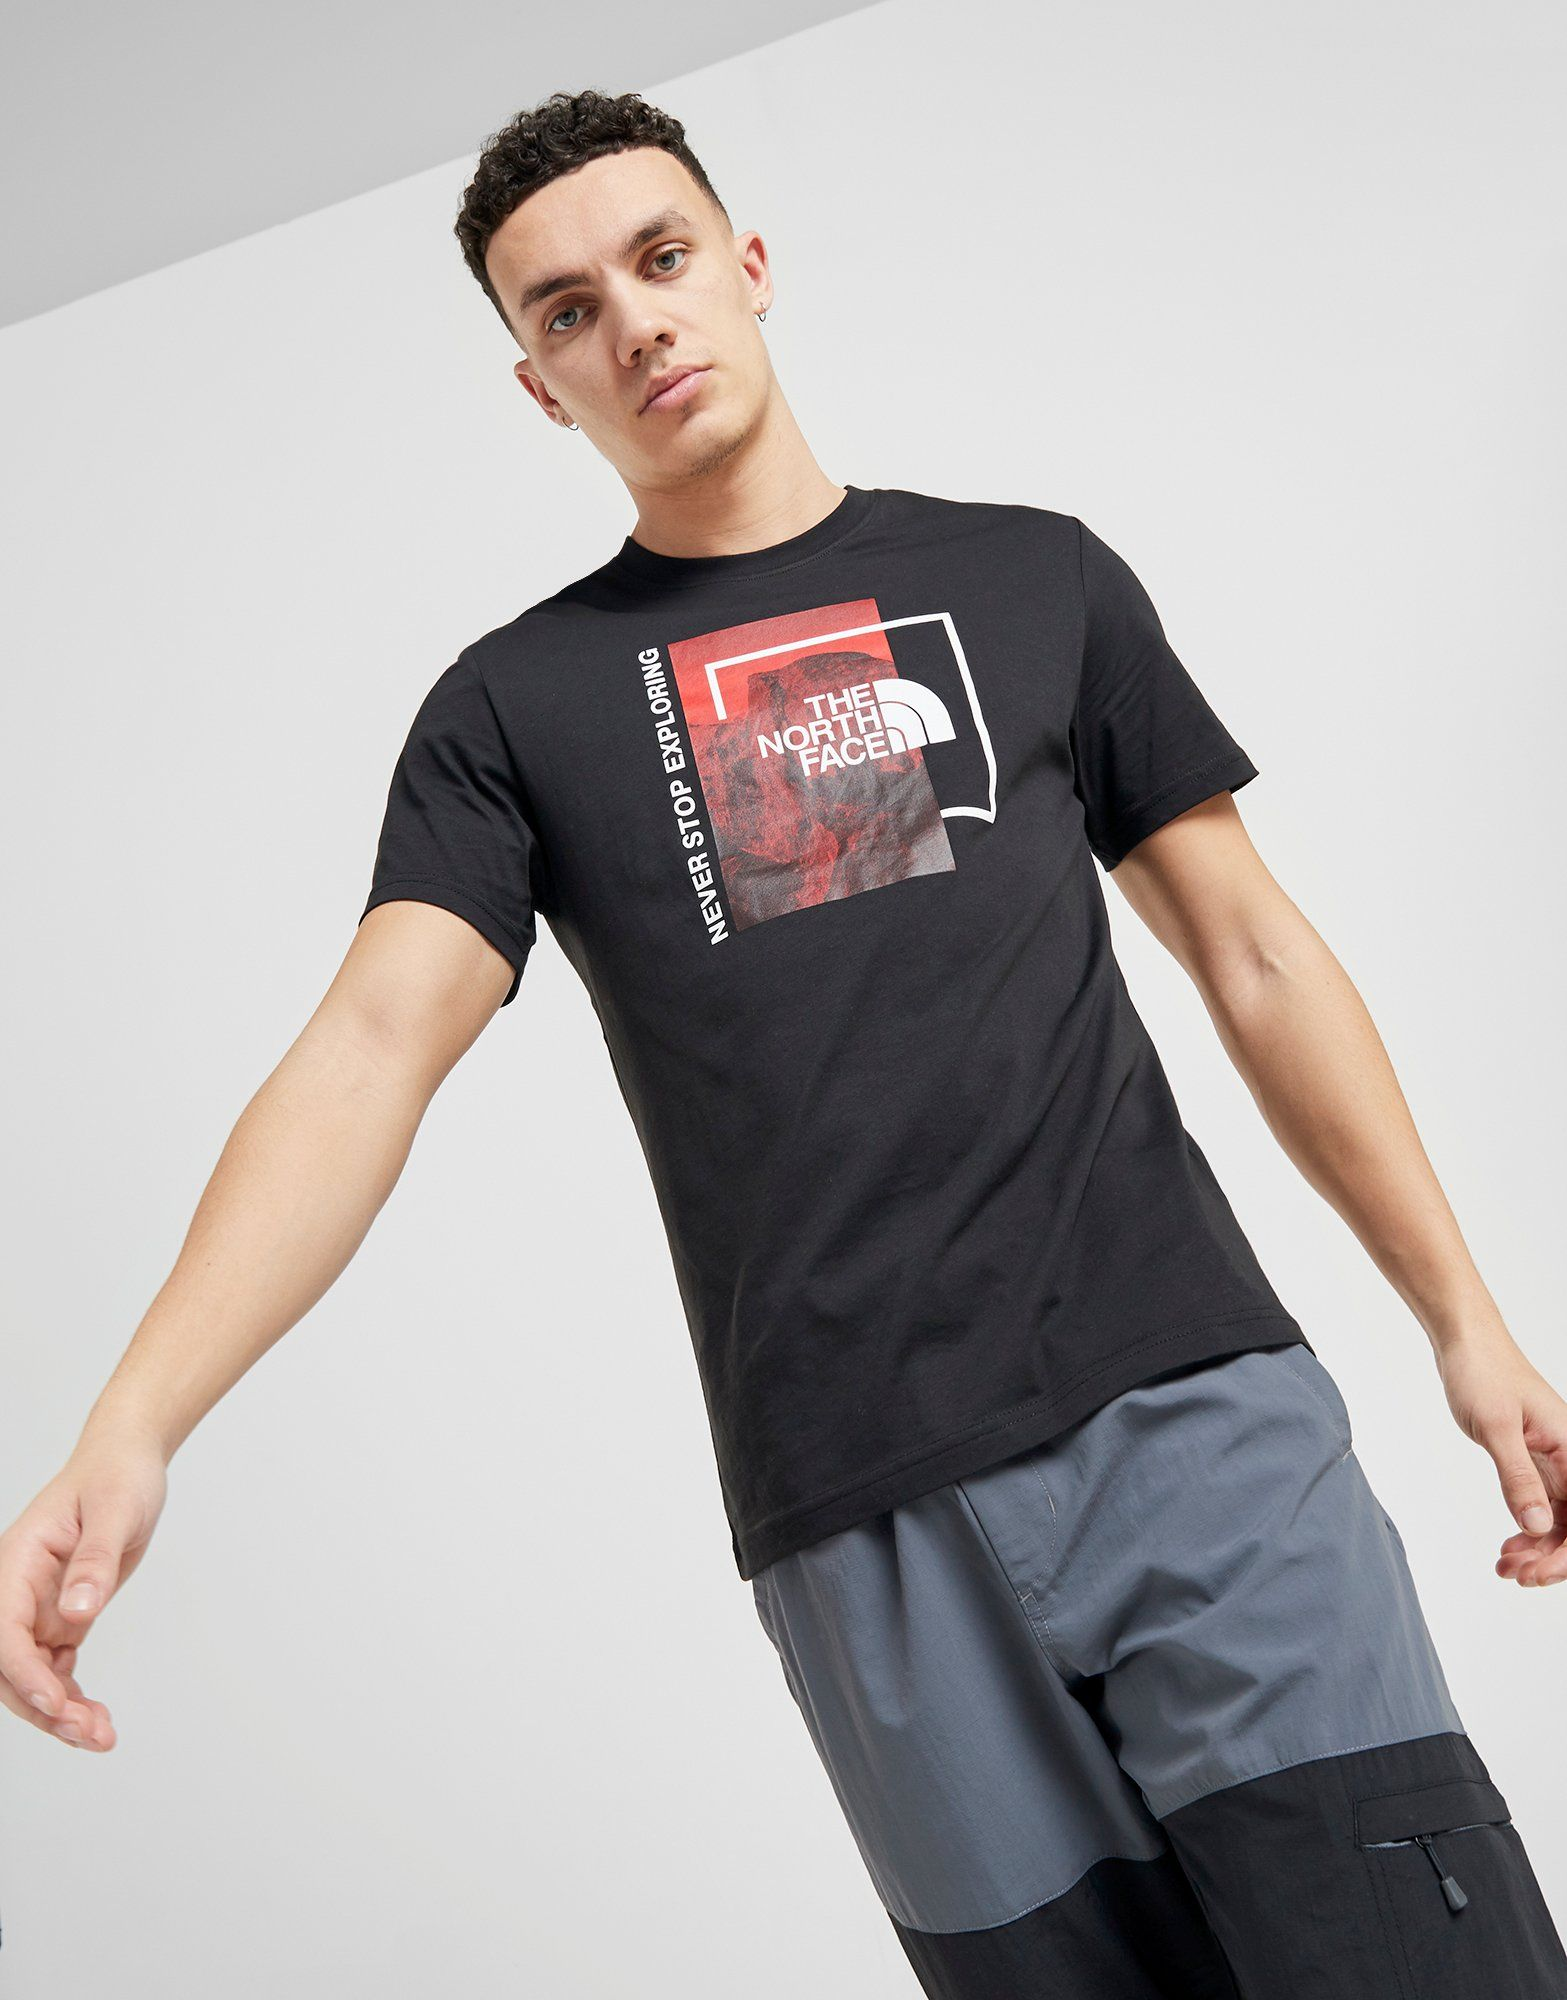 The North Face Mountain T Shirt by The North Face